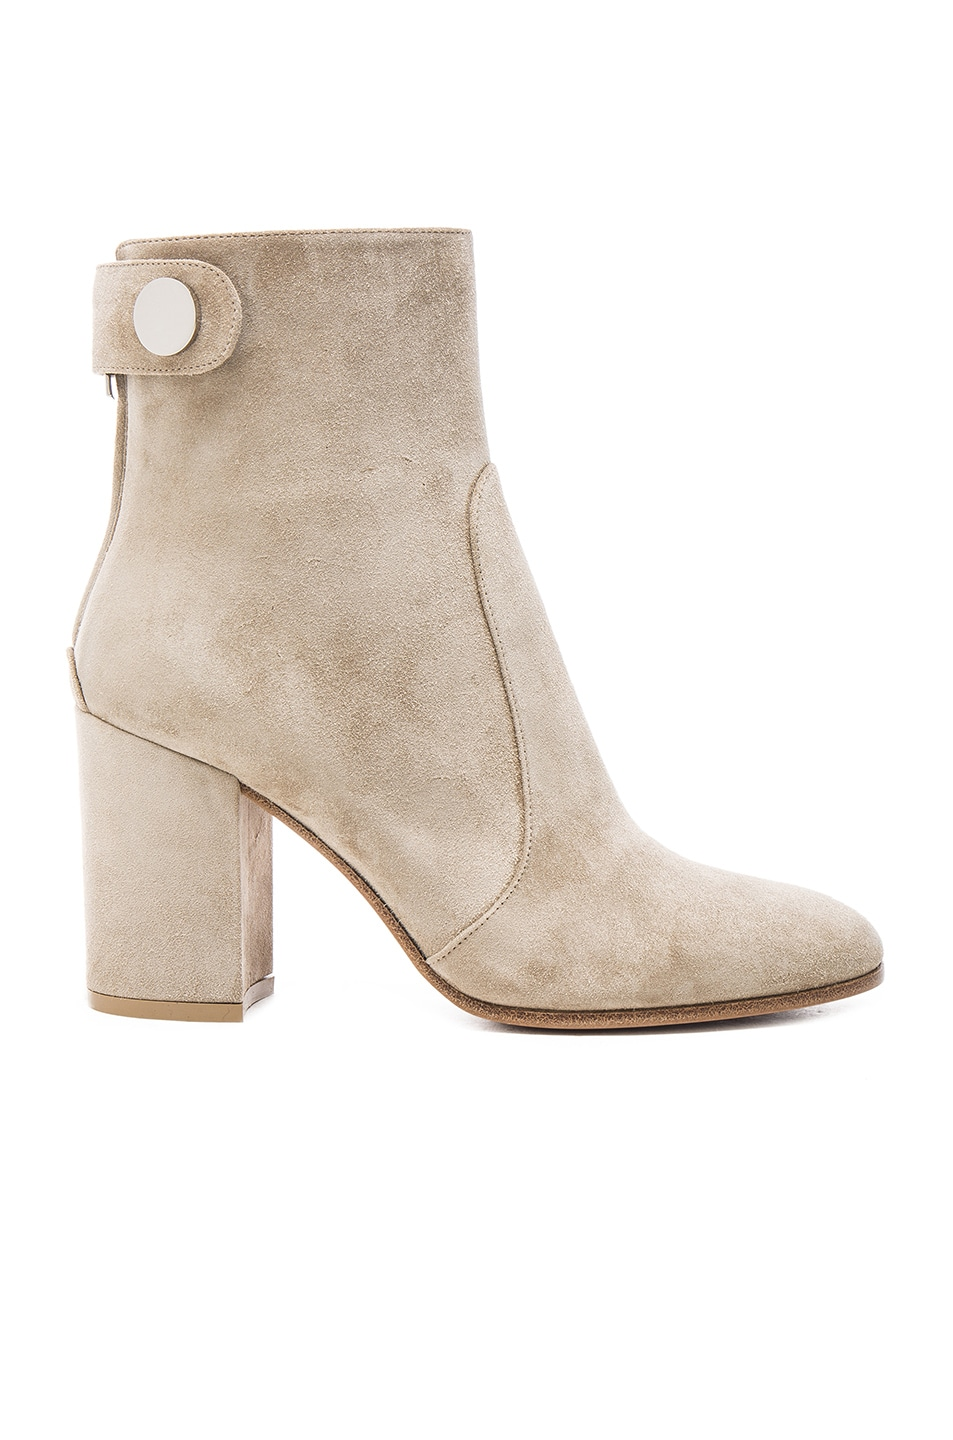 Image 1 of Gianvito Rossi Suede Chunky Heel Boots in Cachemire